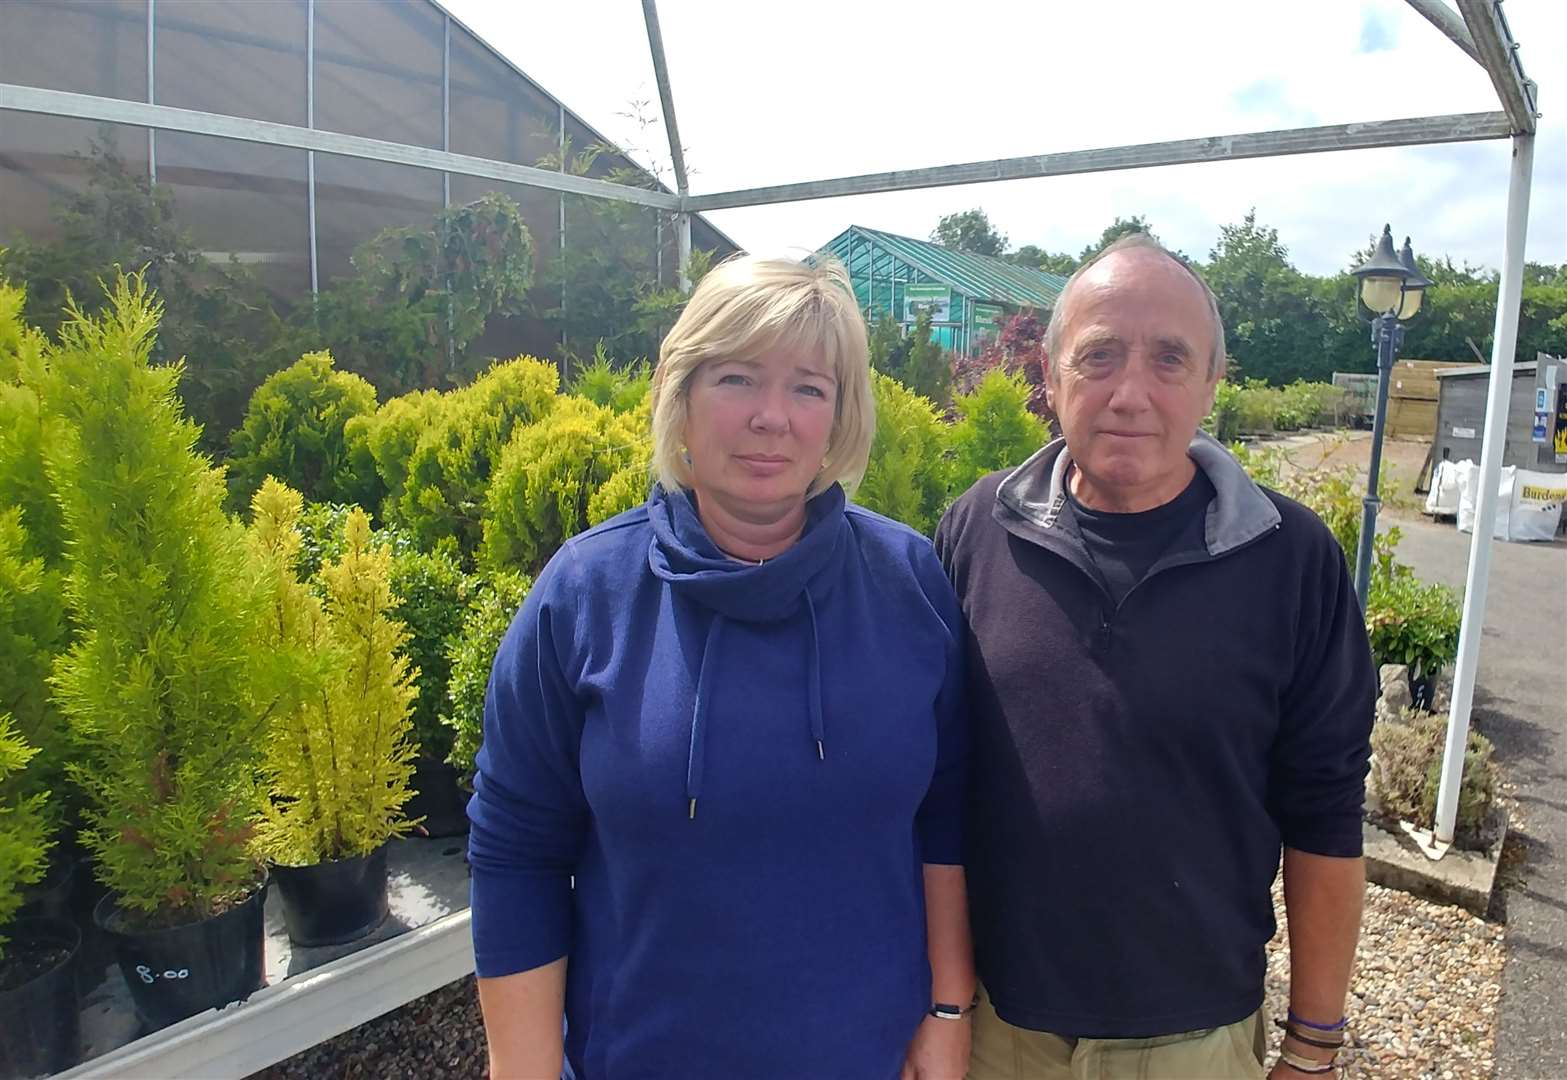 Celia Hanks and Roy Chandler feared they would have to close the business following the death of Nigel Hanks